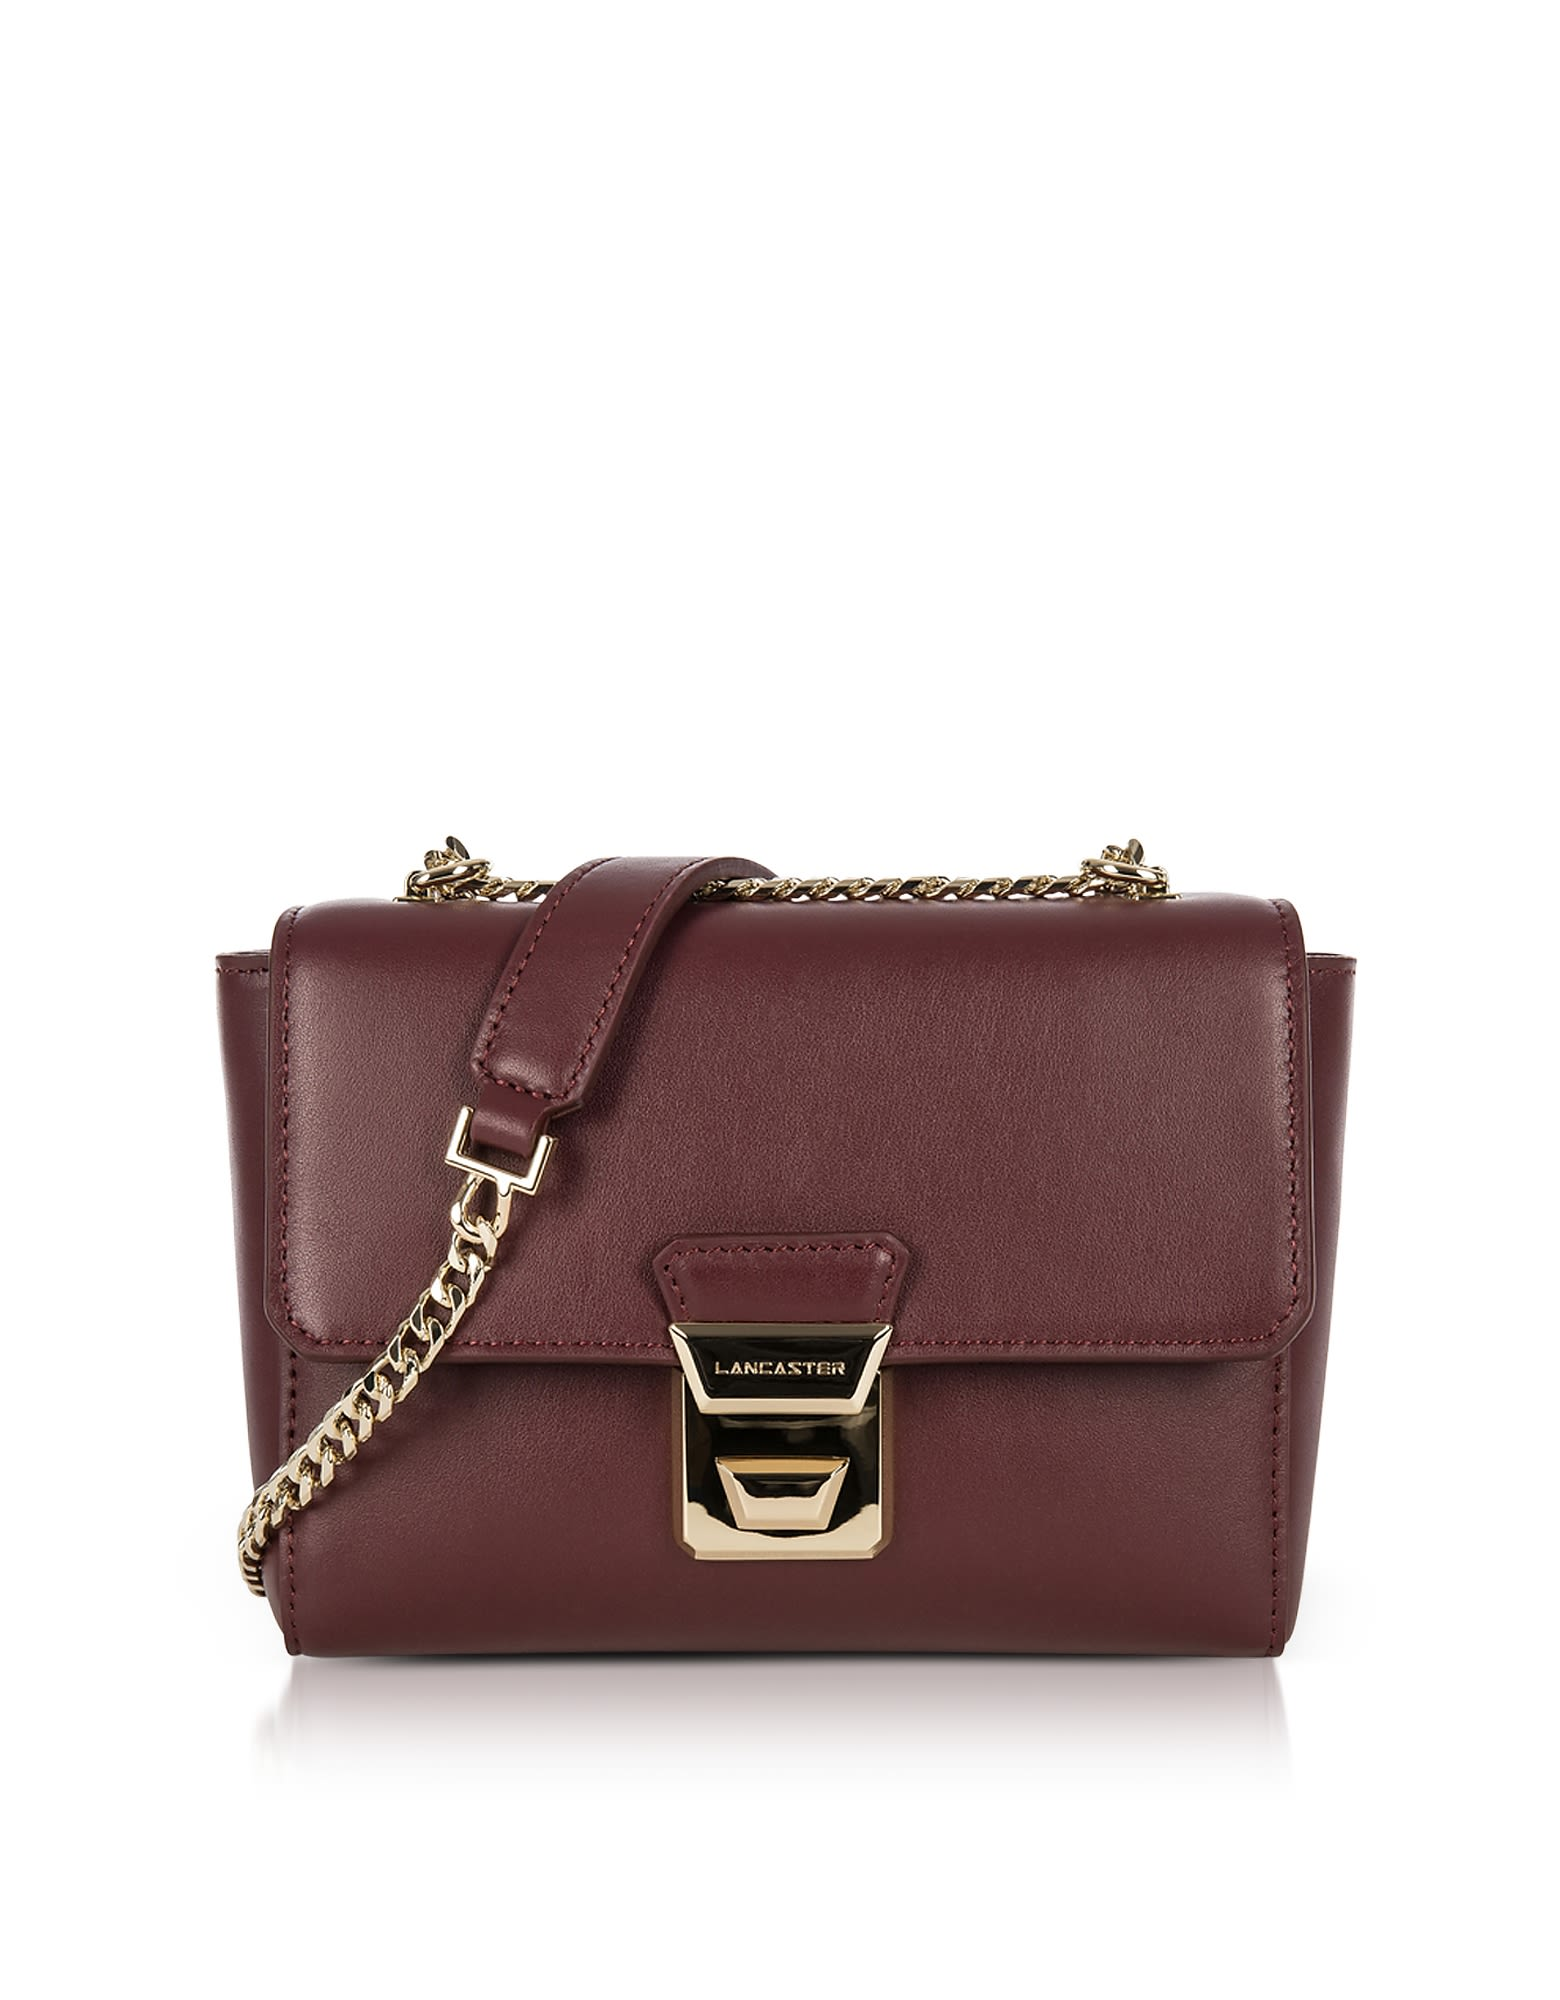 Lancaster GENA OR LEATHER SMALL CROSSBODY BAG